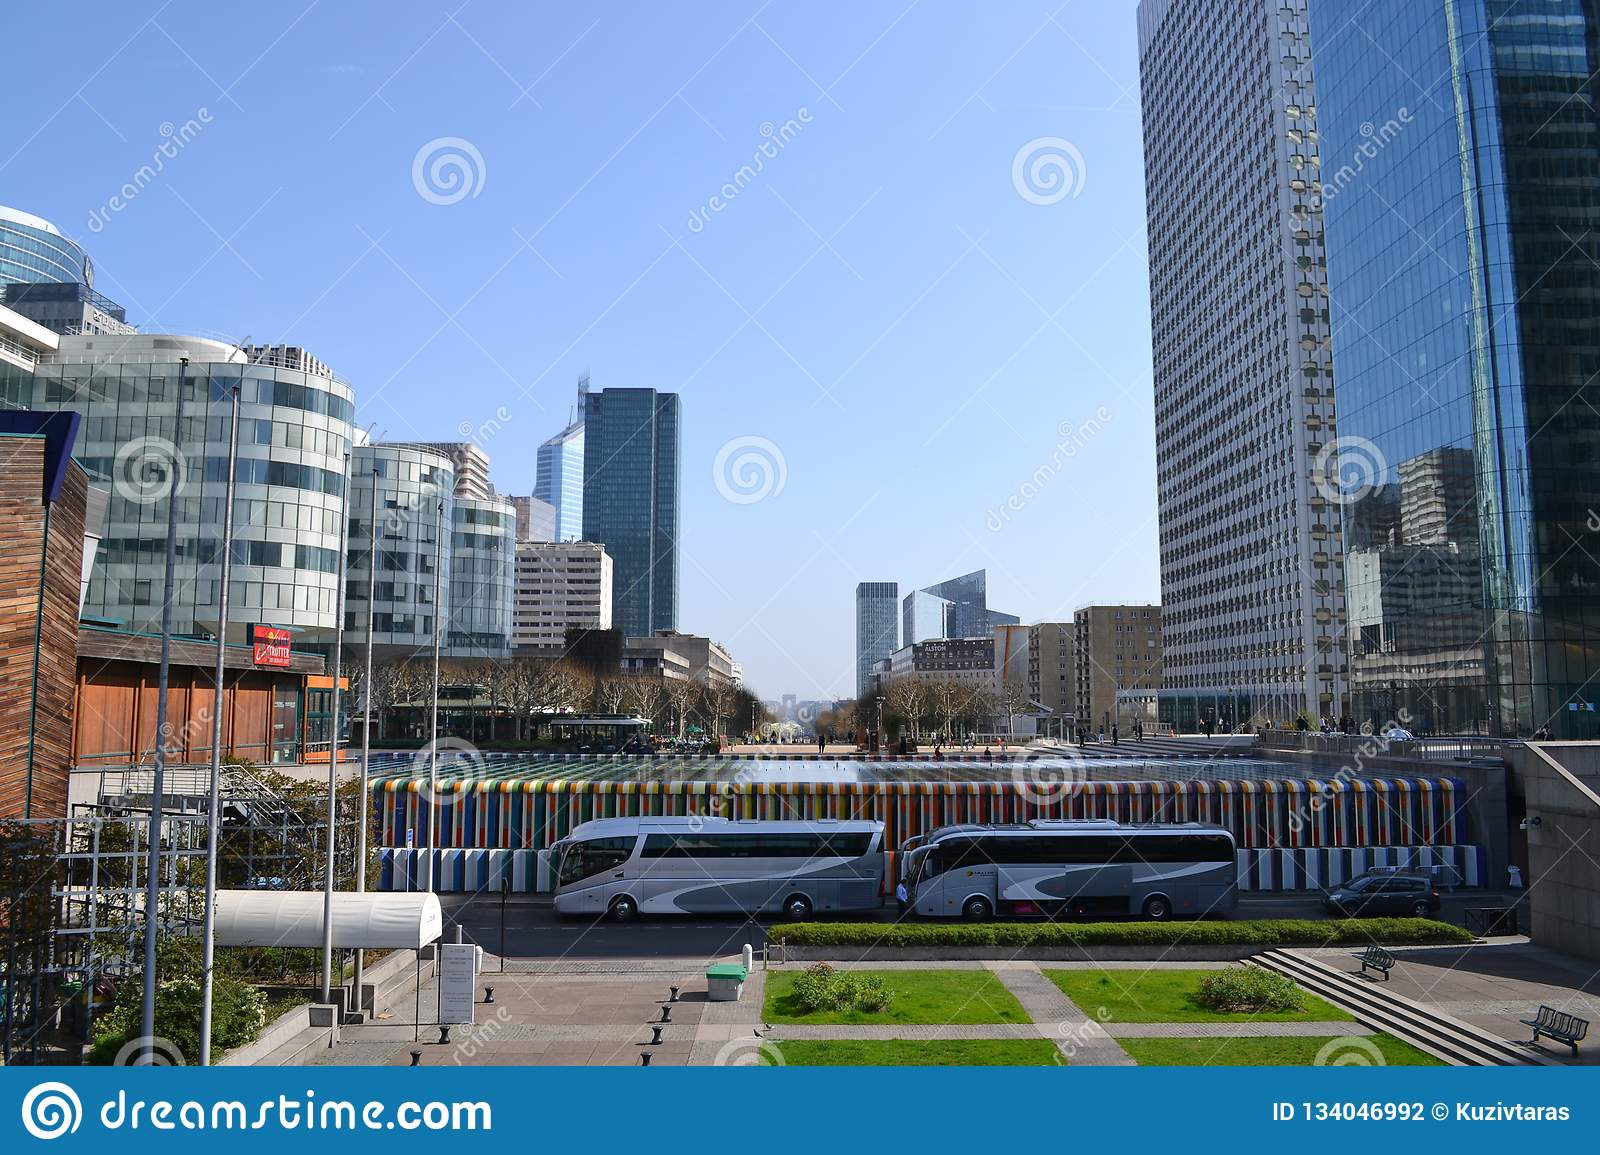 Paris / France - March 29 2012: Panorama of the district of La Defense in Paris towards the city center.